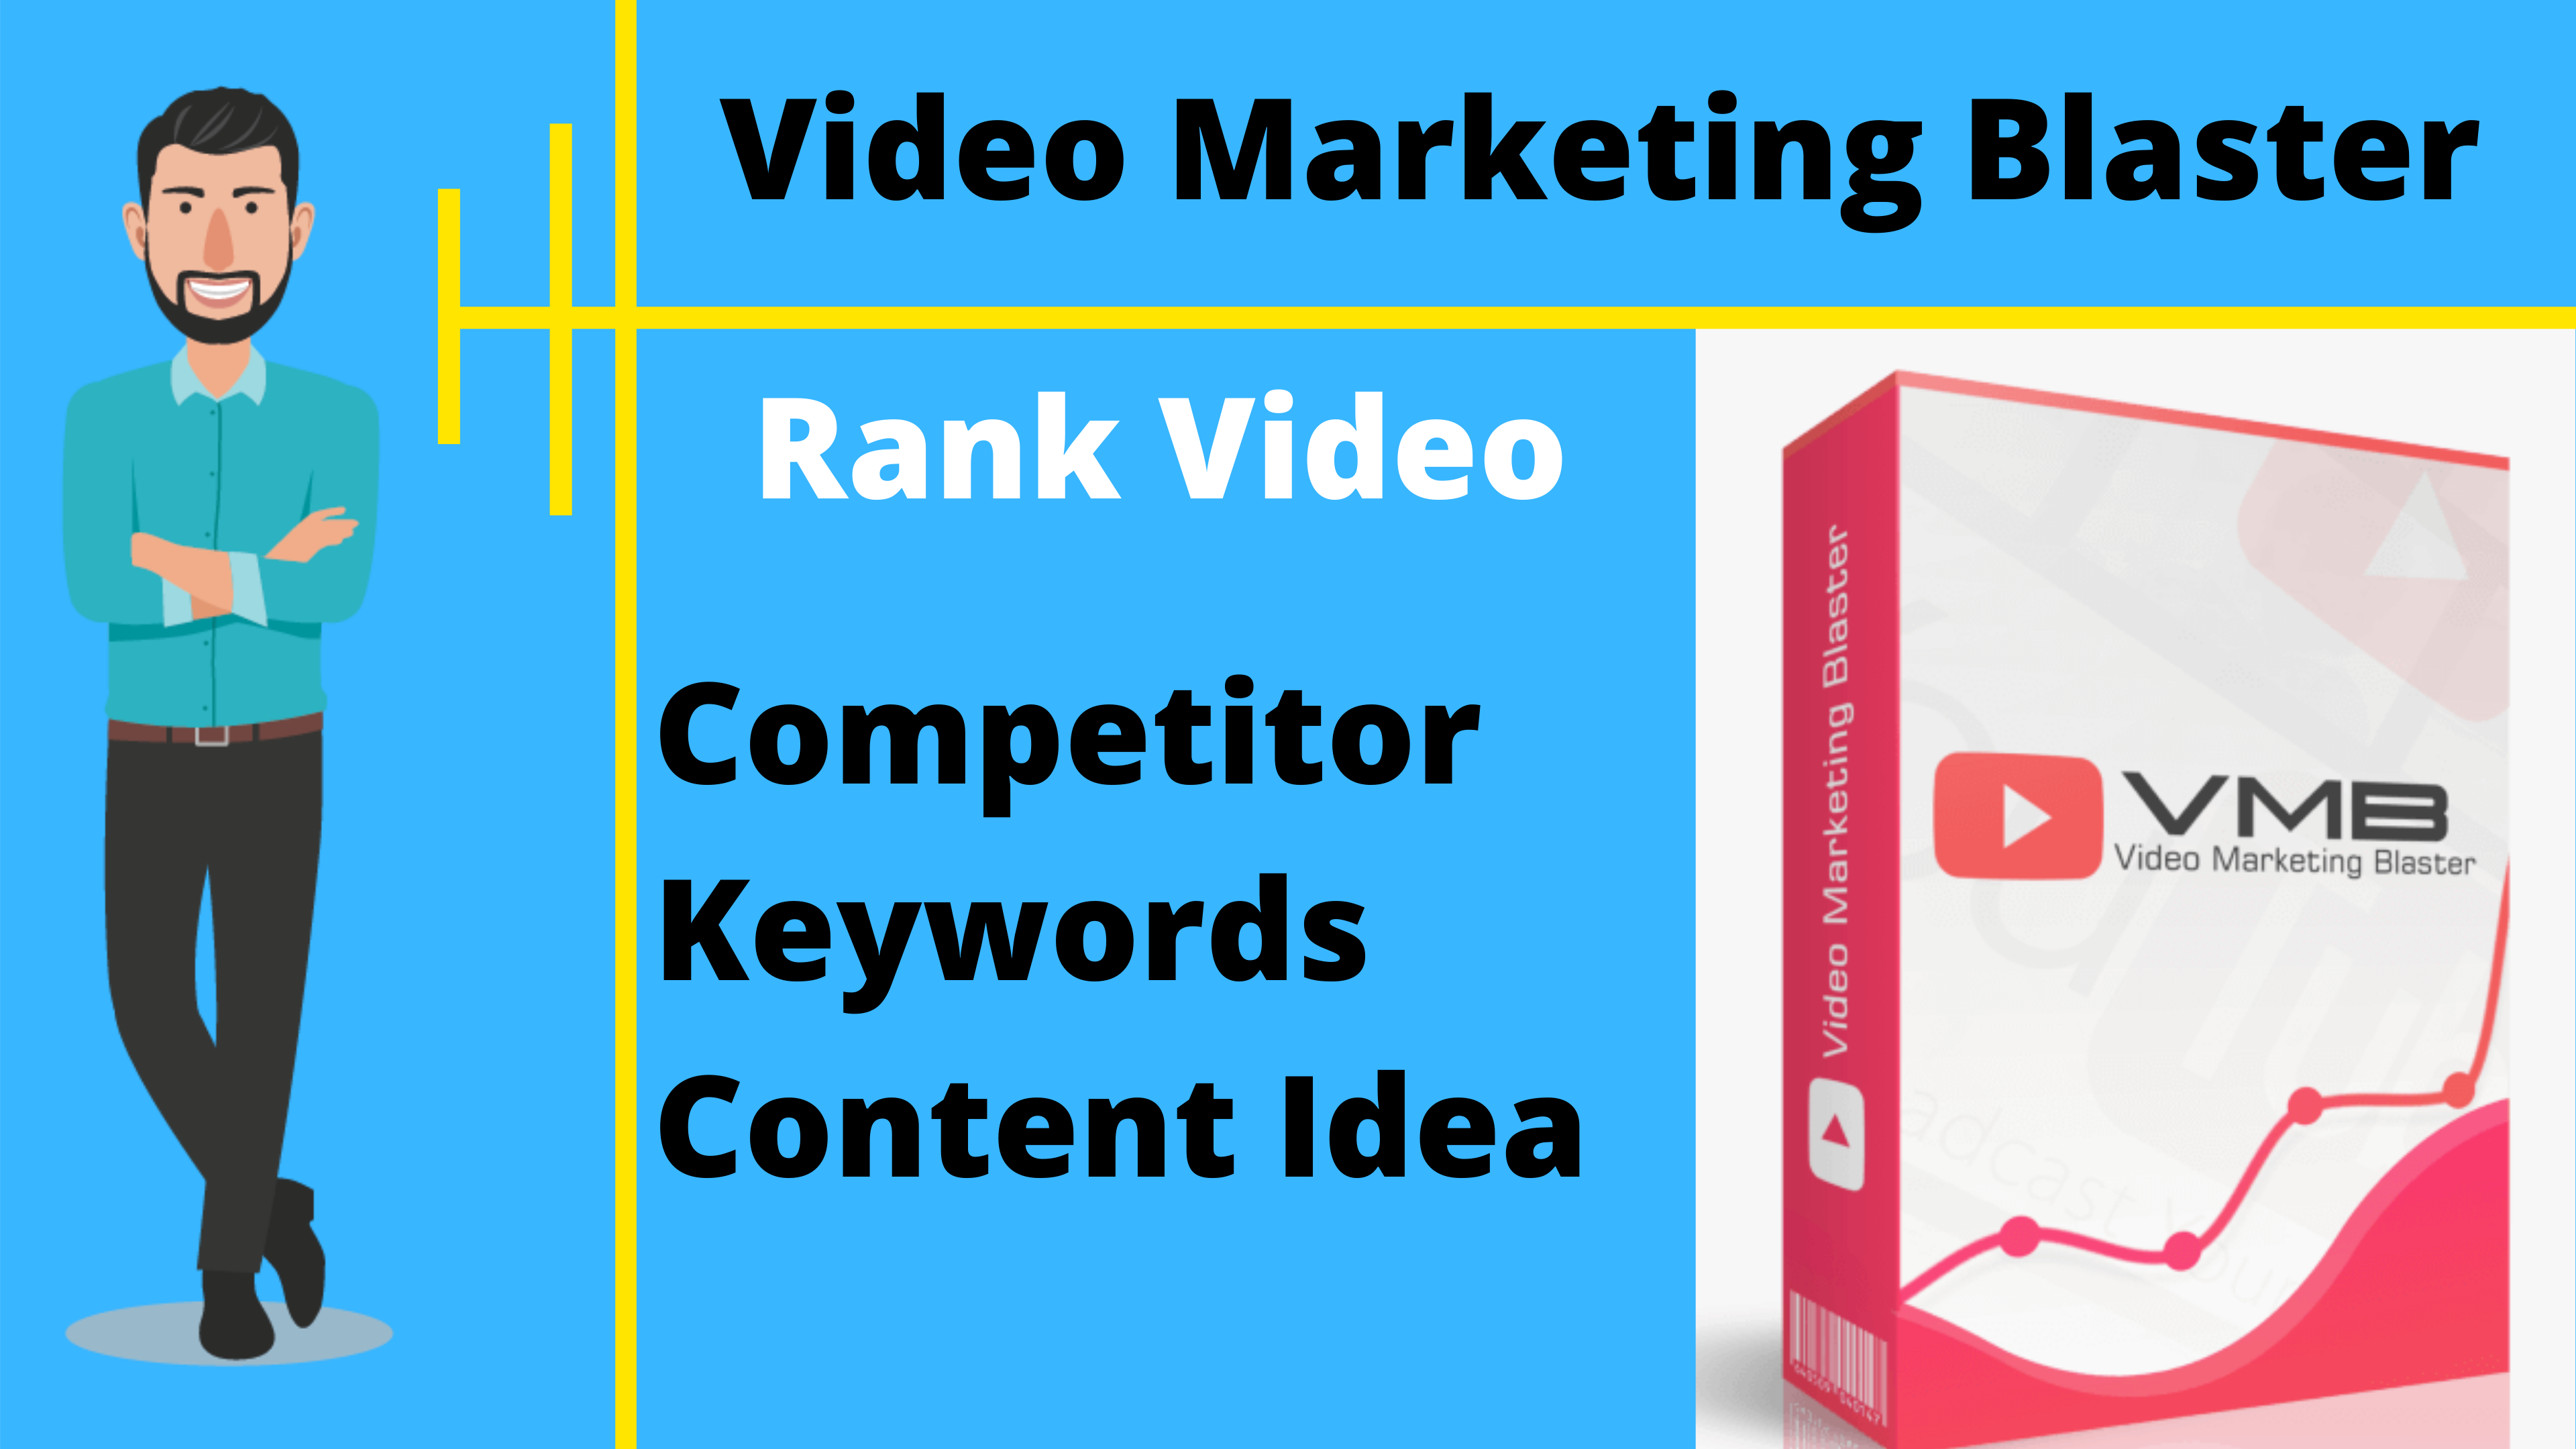 Youtube Video Marketing Blaster Tools Help Your Video Ranking